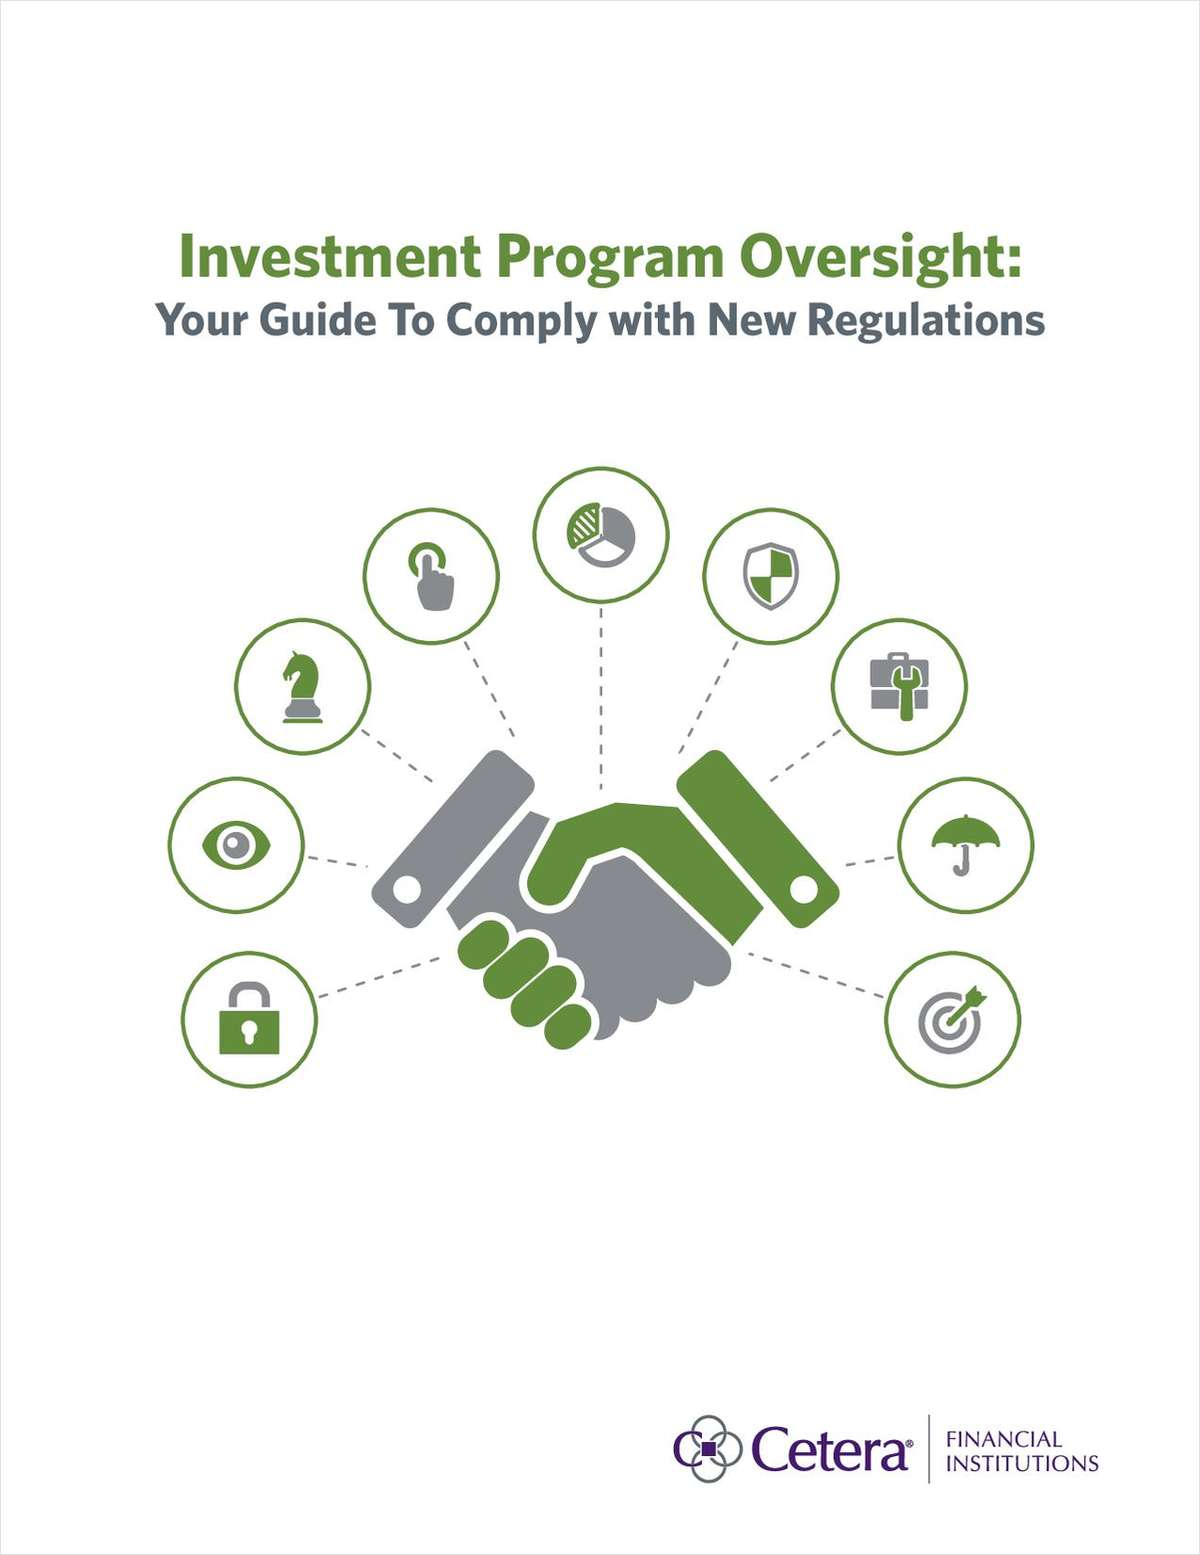 Investment Program Oversight: Your Guide to Comply with New Regulations